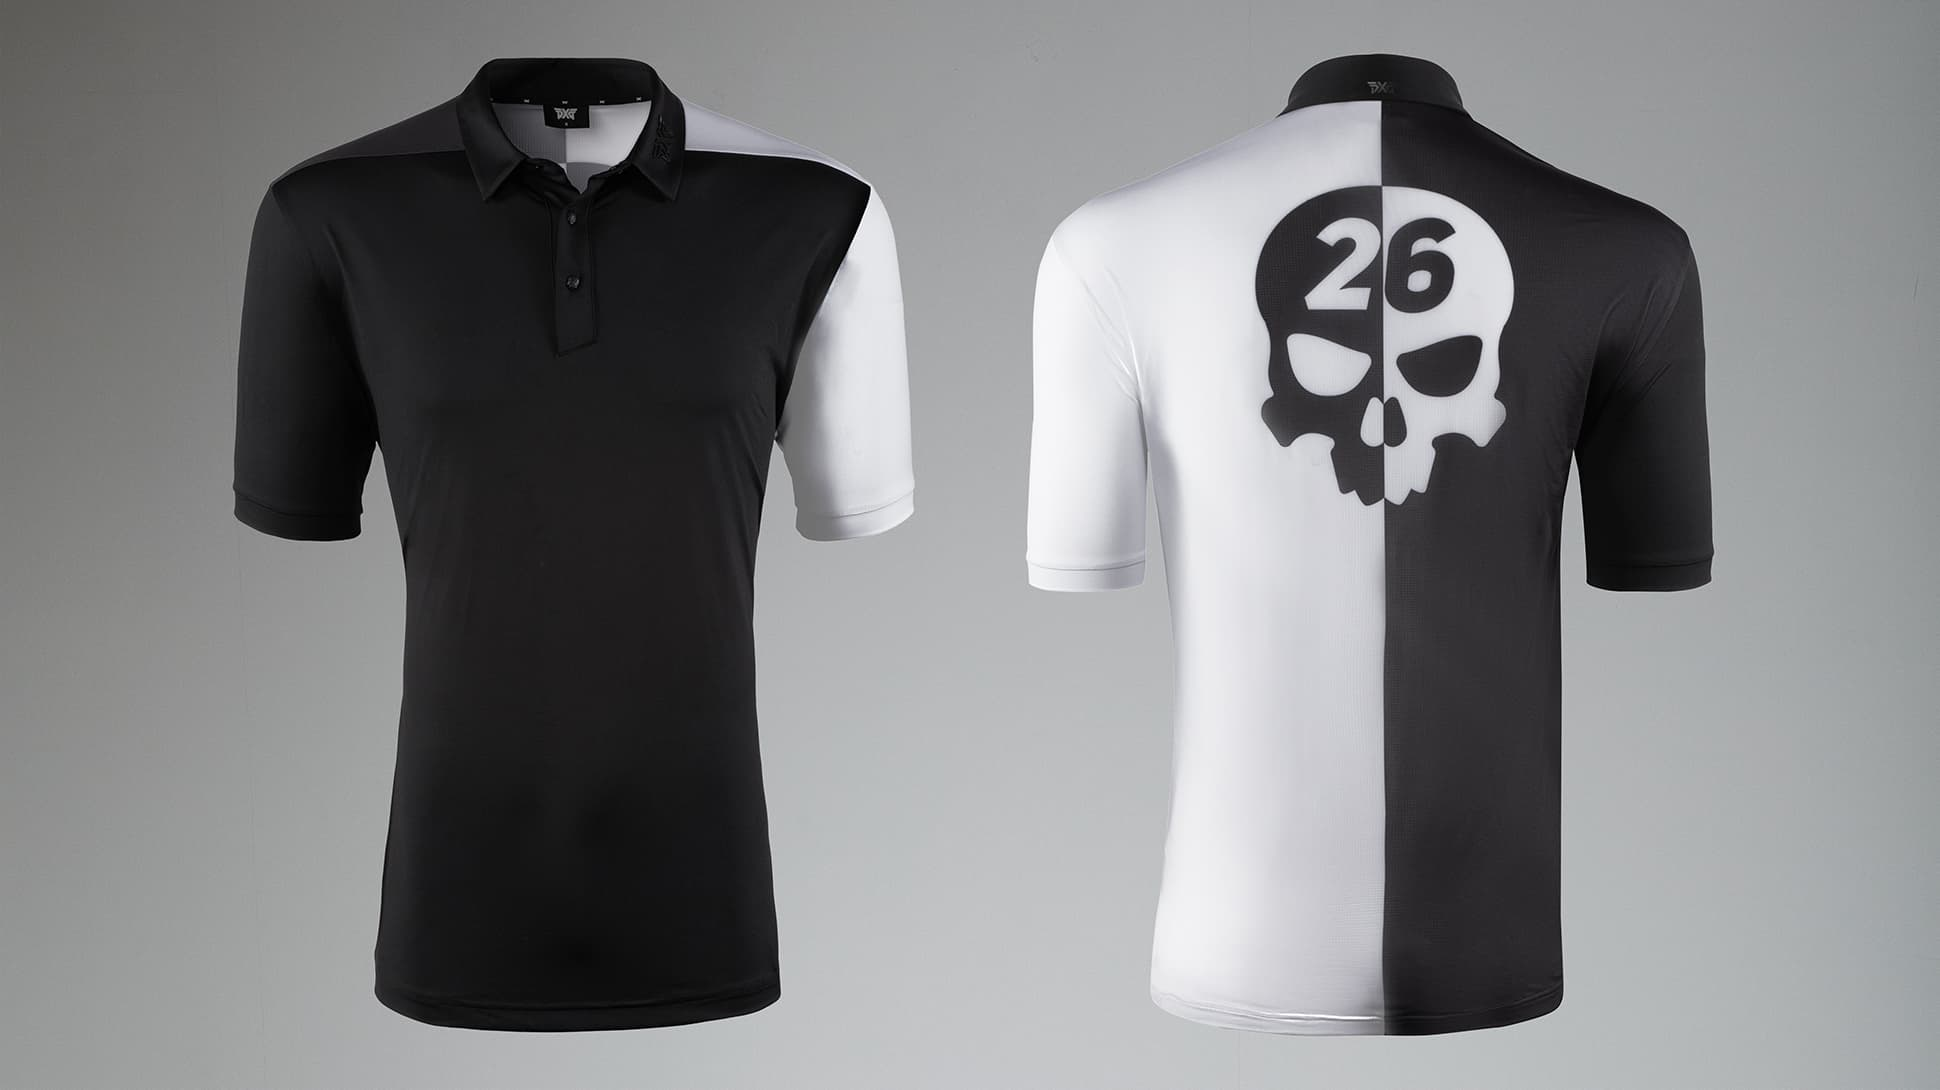 2-Tone Darkness Polo Image 2